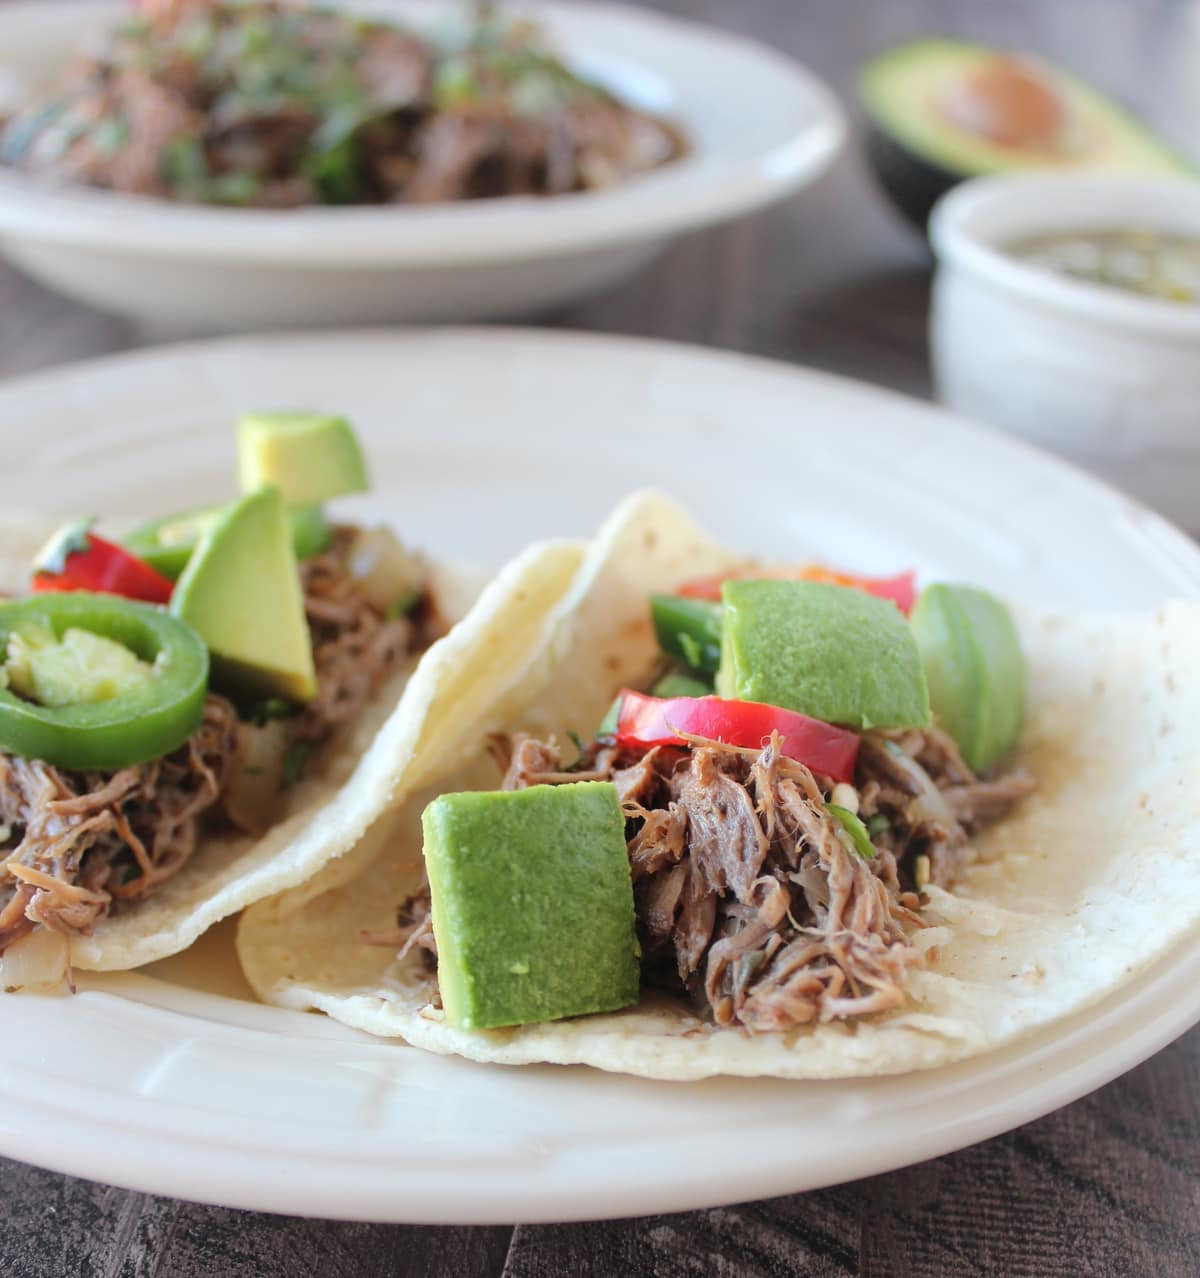 Slow cooked beef barbacoa is an easy, gluten free meal to make at home ...